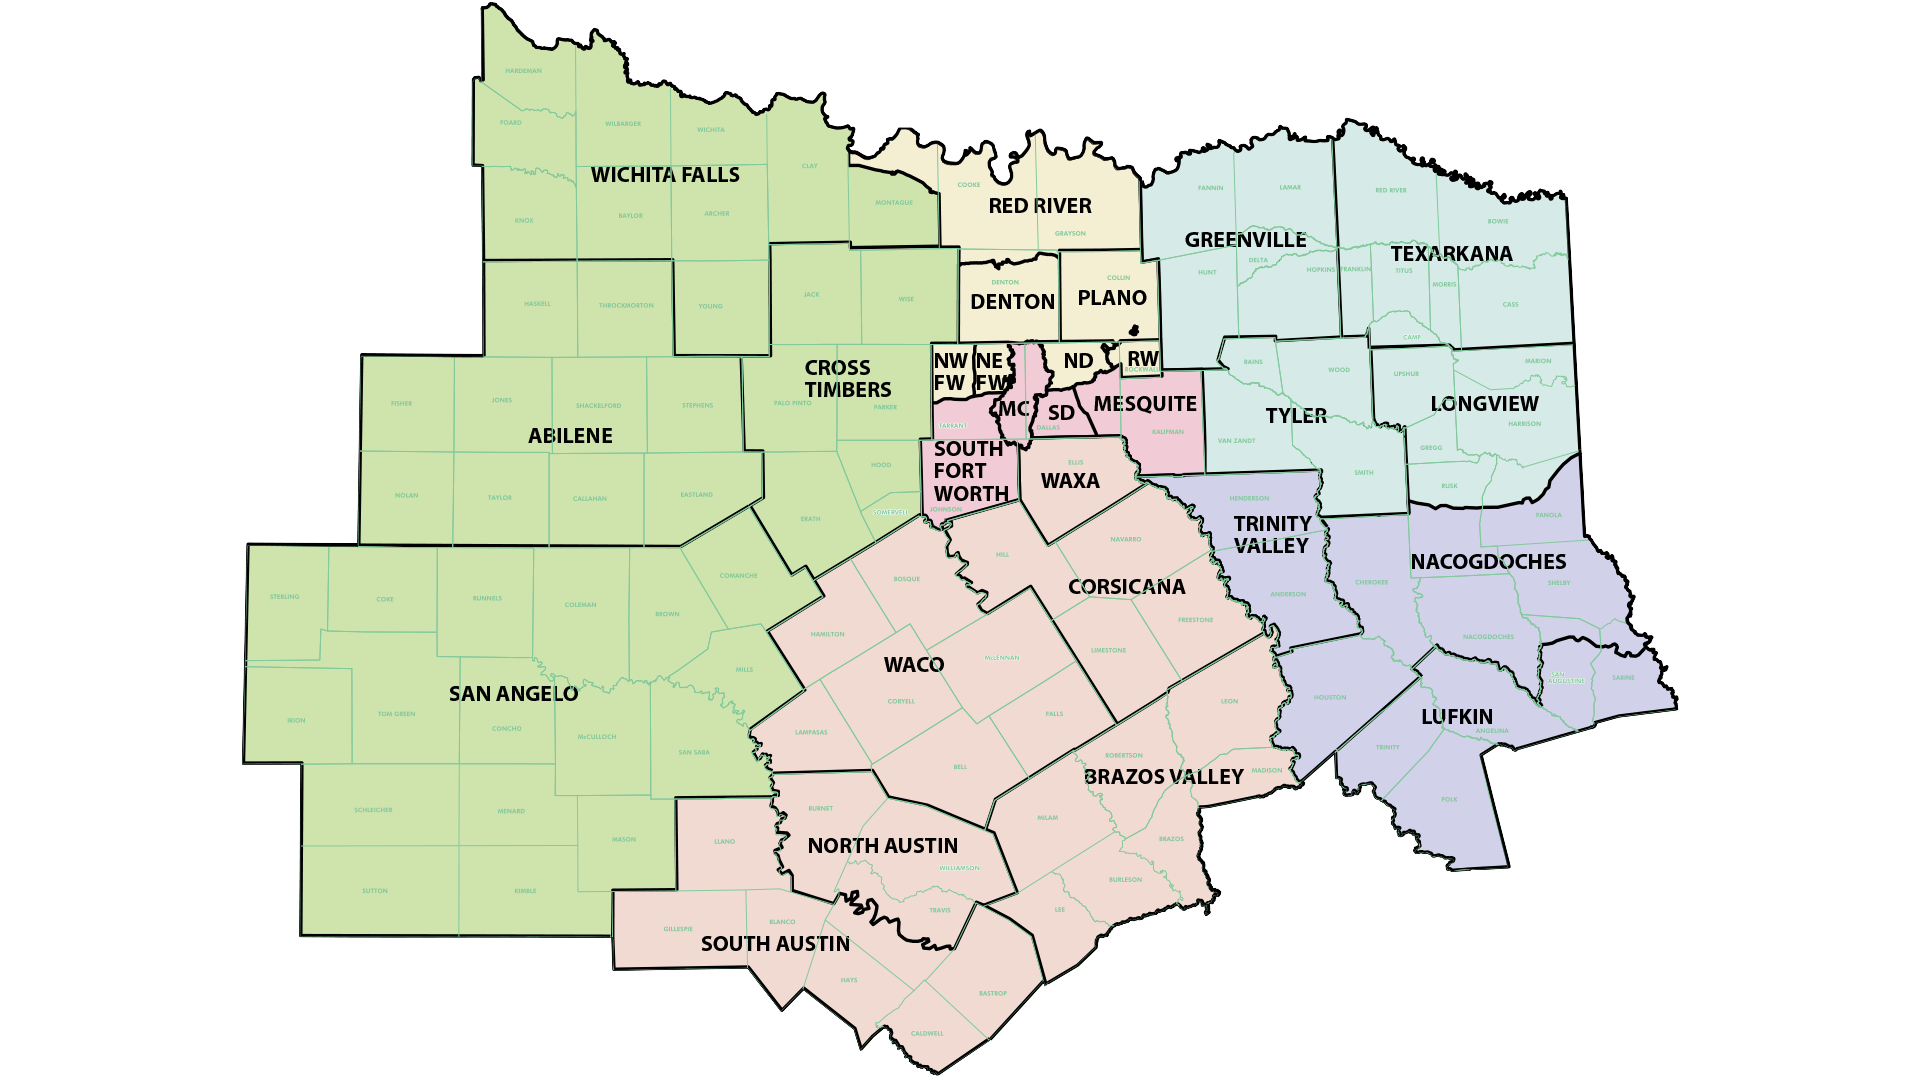 District Presbytery | North Texas District Council of the ... on central texas map, pittsburgh cities map, illinois cities map, gulf coastal plains, big bend, northeast texas, denton county cities map, southeast texas, wisconsin cities map, galveston bay, puget sound cities map, north georgia cities map, south plains, utah cities map, edwards plateau, idaho cities map, dallas county cities map, texas panhandle, florida cities map, permian basin, frisco texas map, arkansas cities map, city of denton county texas map, san francisco cities map, texas state map, west texas, piney woods, east texas, kansas cities map, alabama cities map, indiana cities map, texas hill country, south texas, brazos valley, central texas,